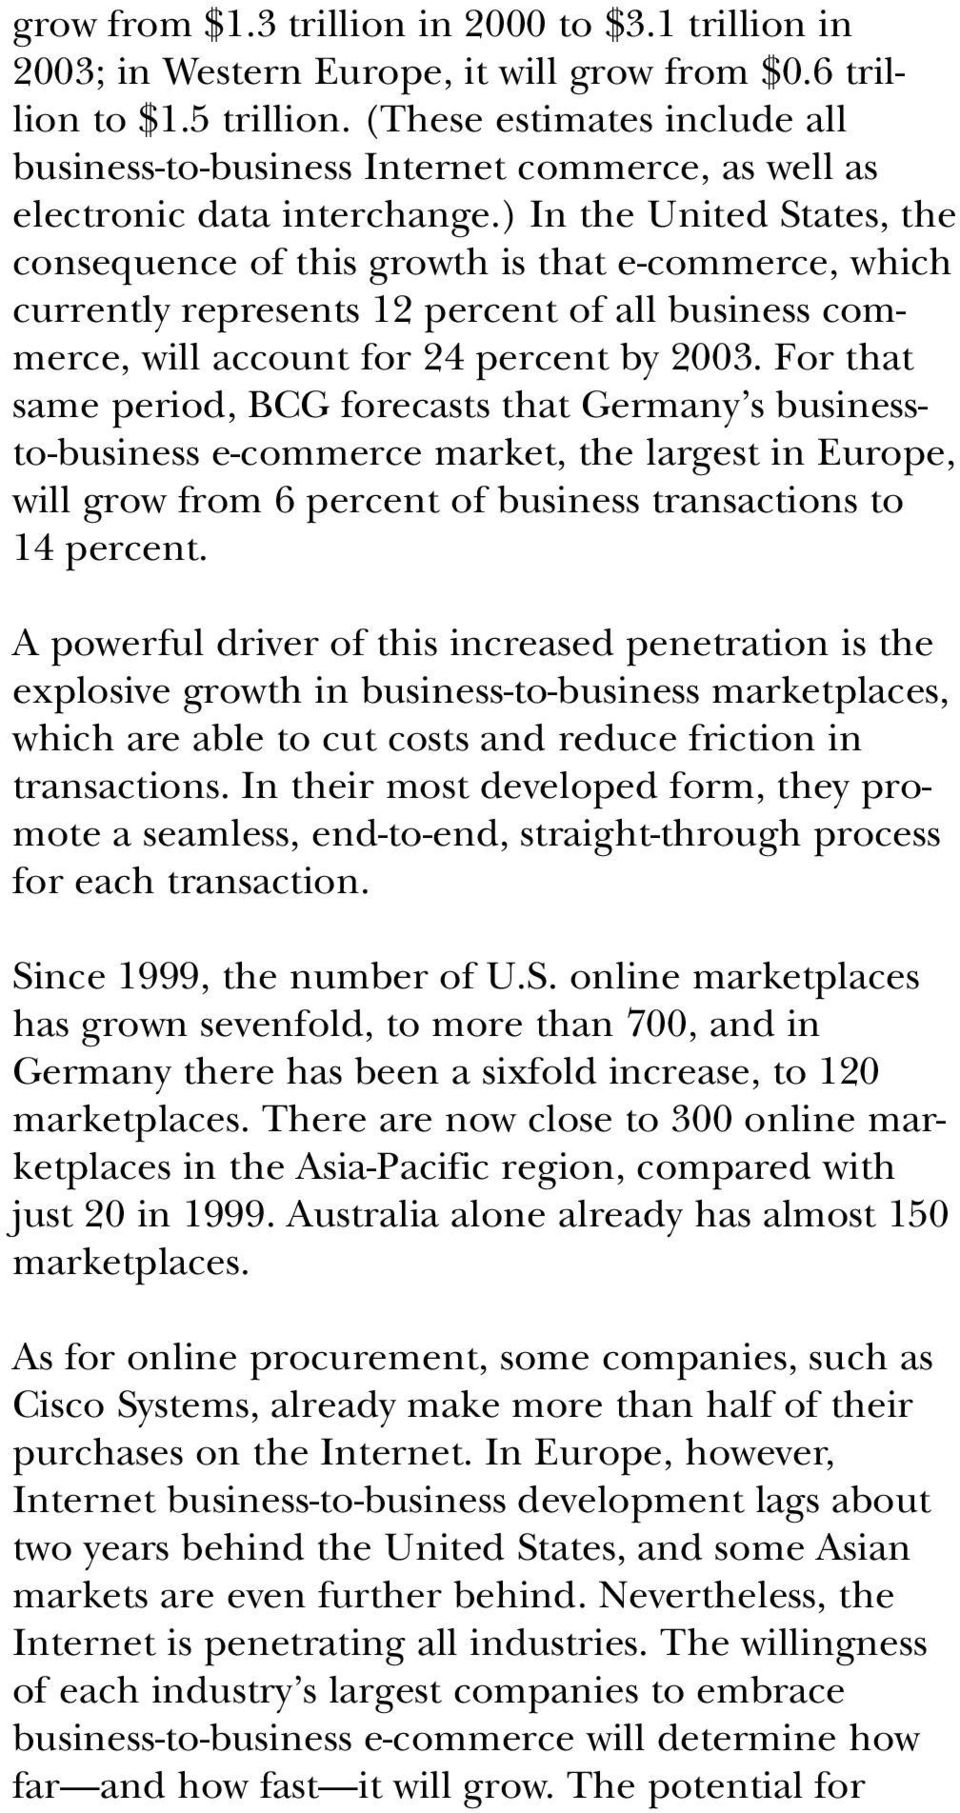 ) In the United States, the consequence of this growth is that e-commerce, which currently represents 12 percent of all business commerce, will account for 24 percent by 2003.